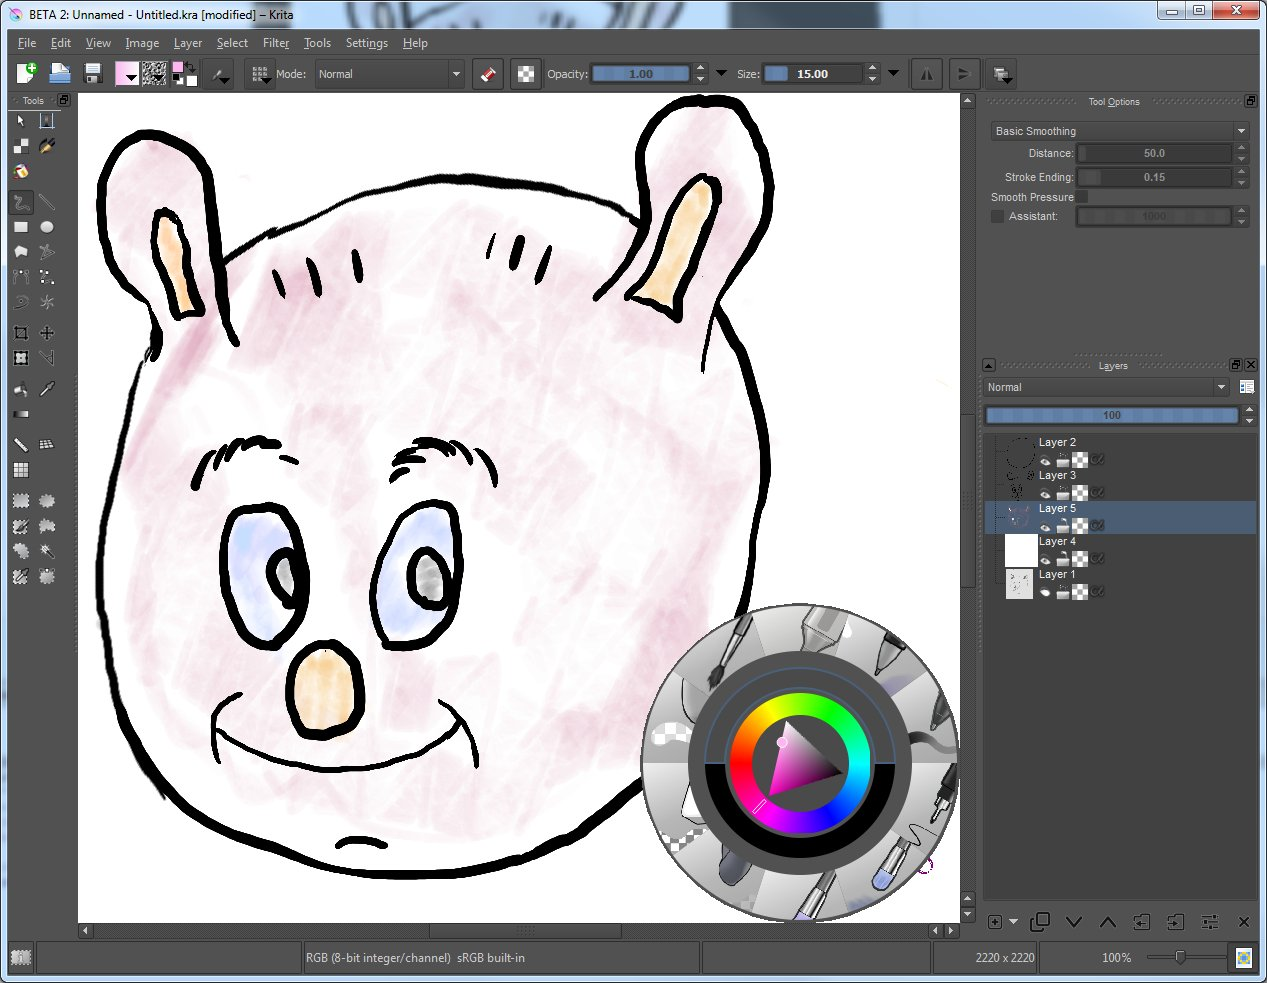 Krita Window Screenshot with a loaded hand drawn image of a pig